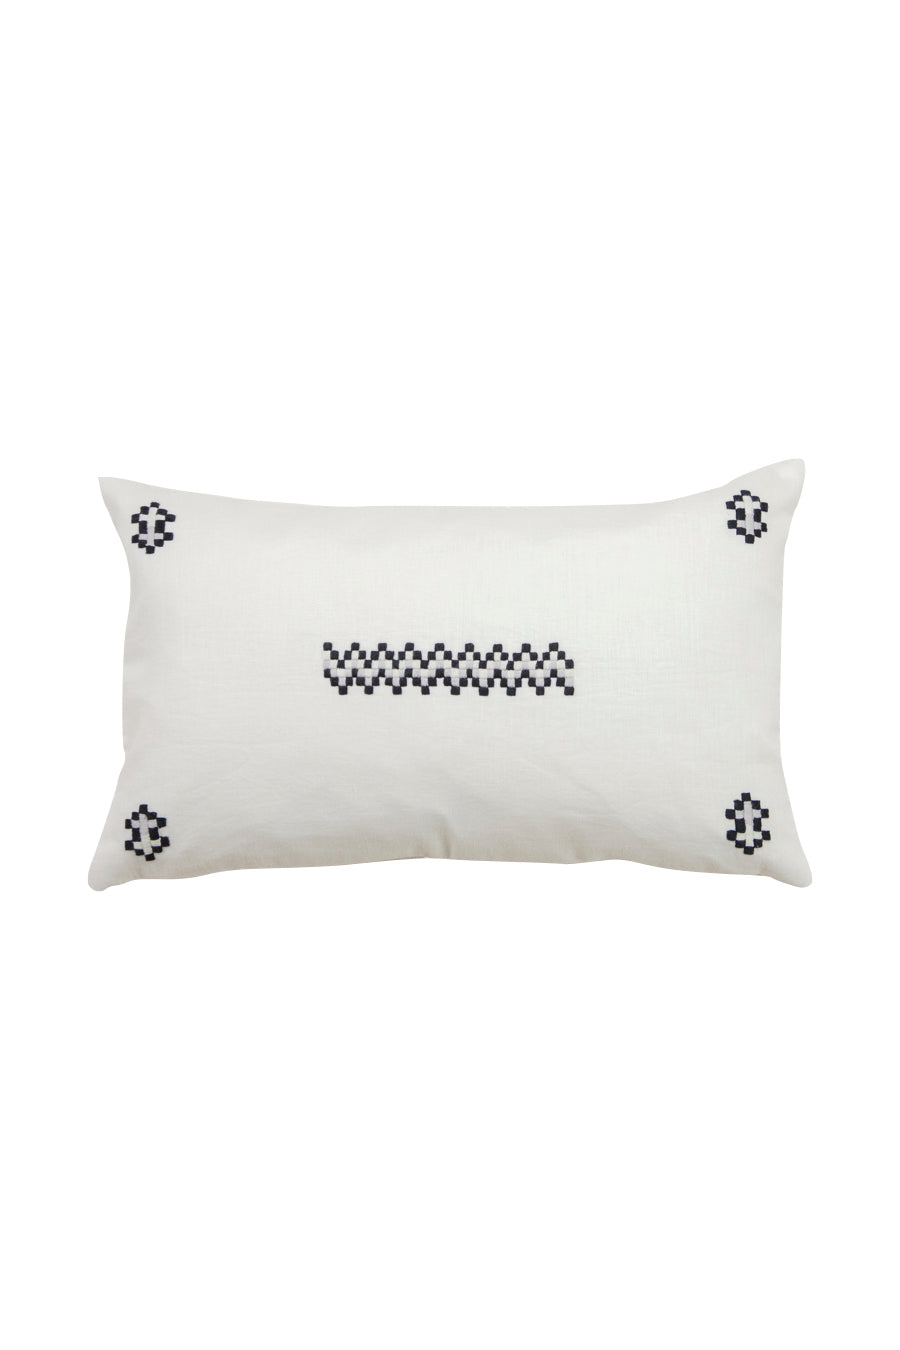 Aid to Artisans Cruz Pillow - Black